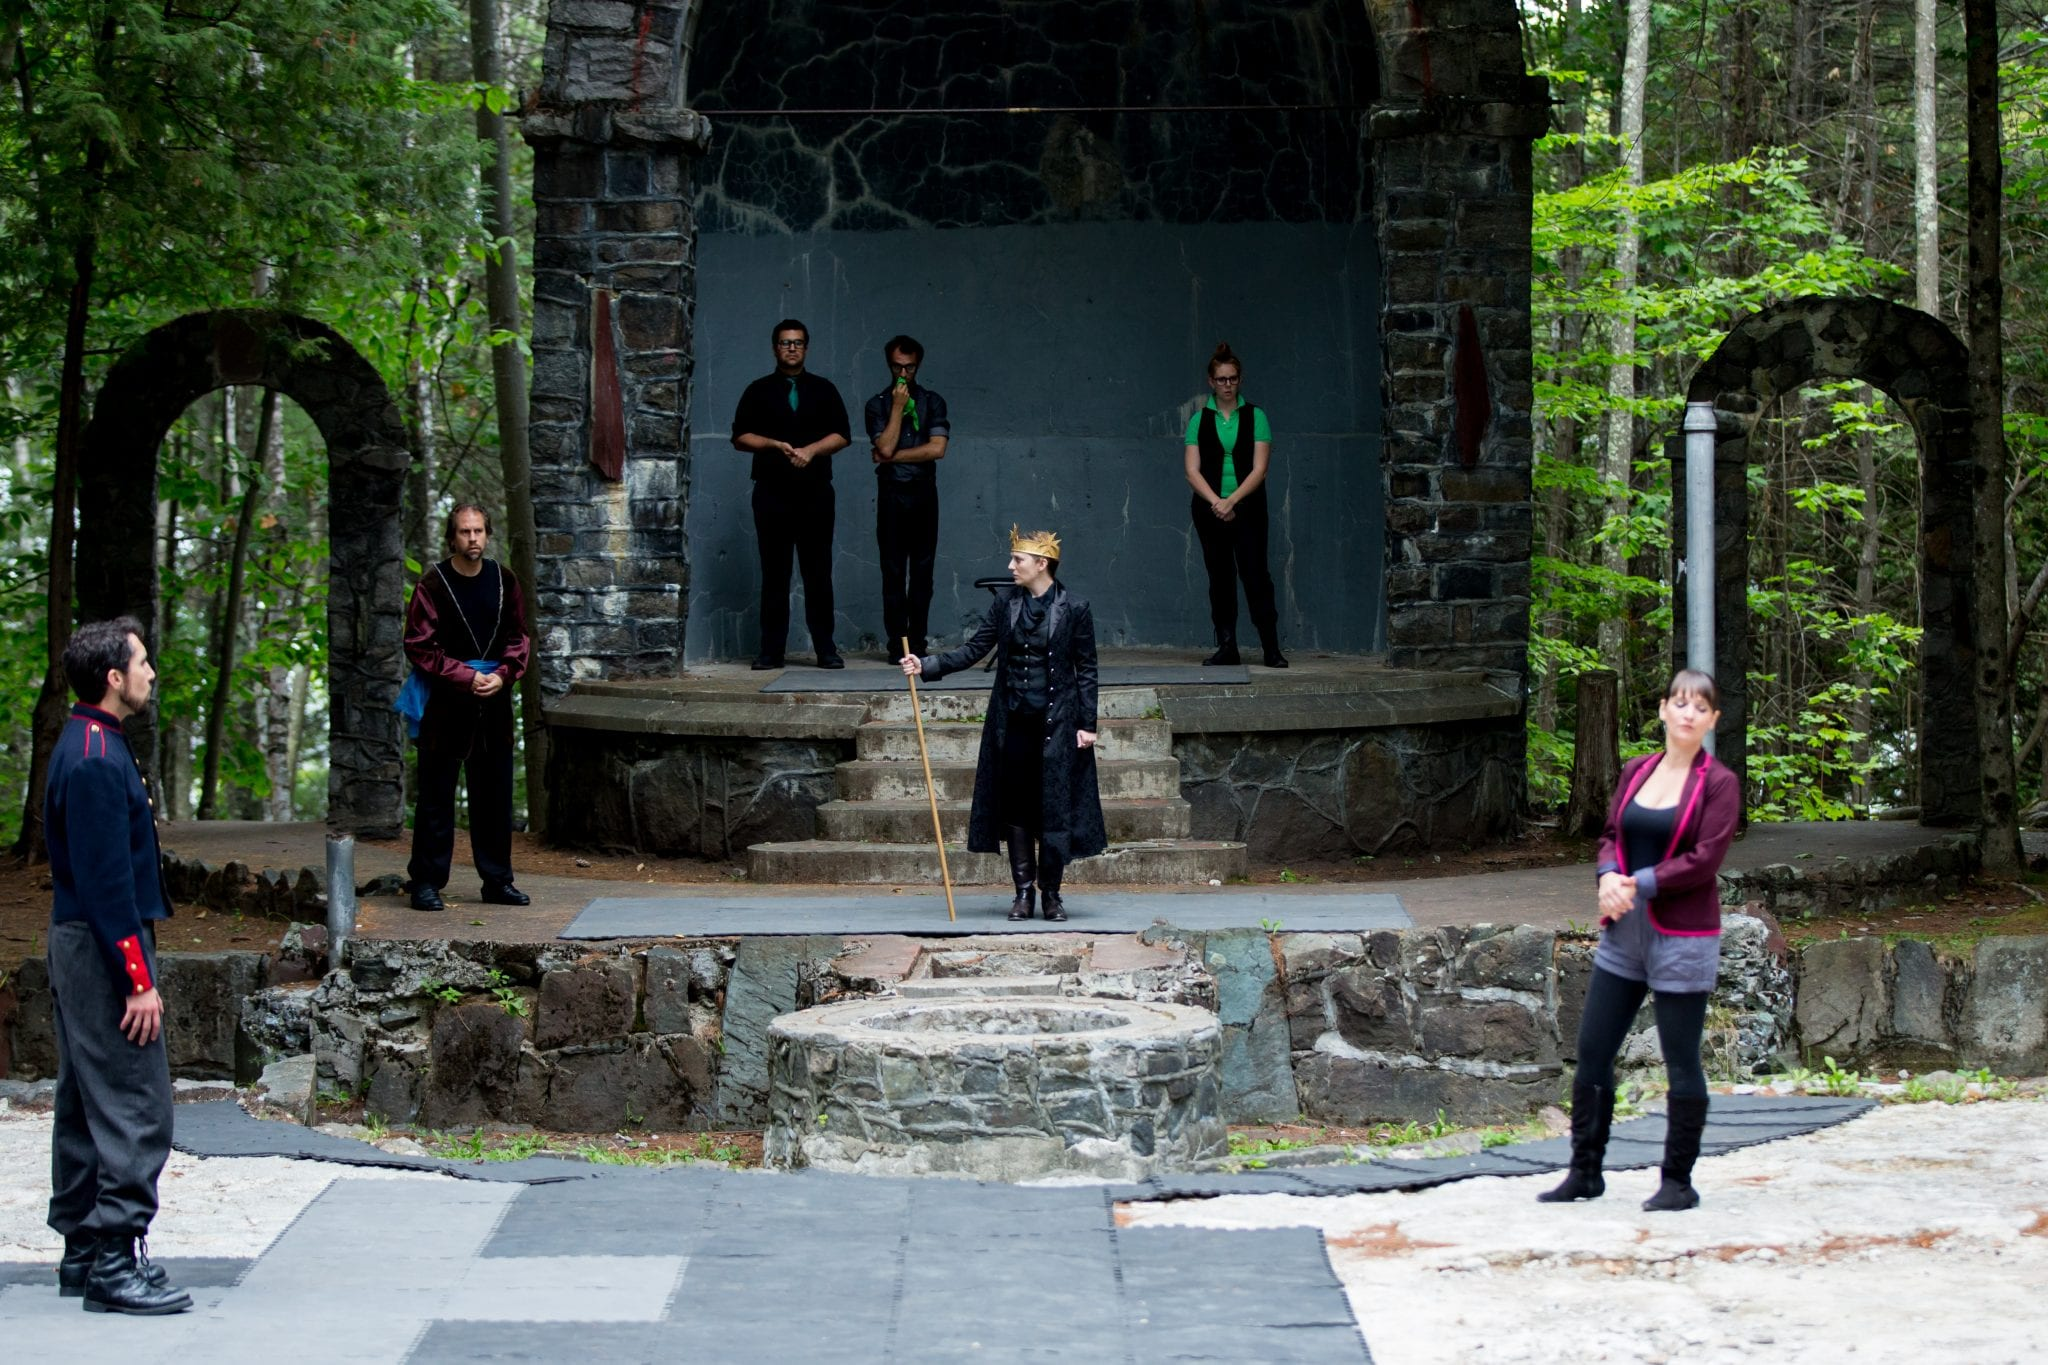 Tara Bradway as King Richard II and ensemble in Richard II, 2014. Scaroon Manor Amphitheater,